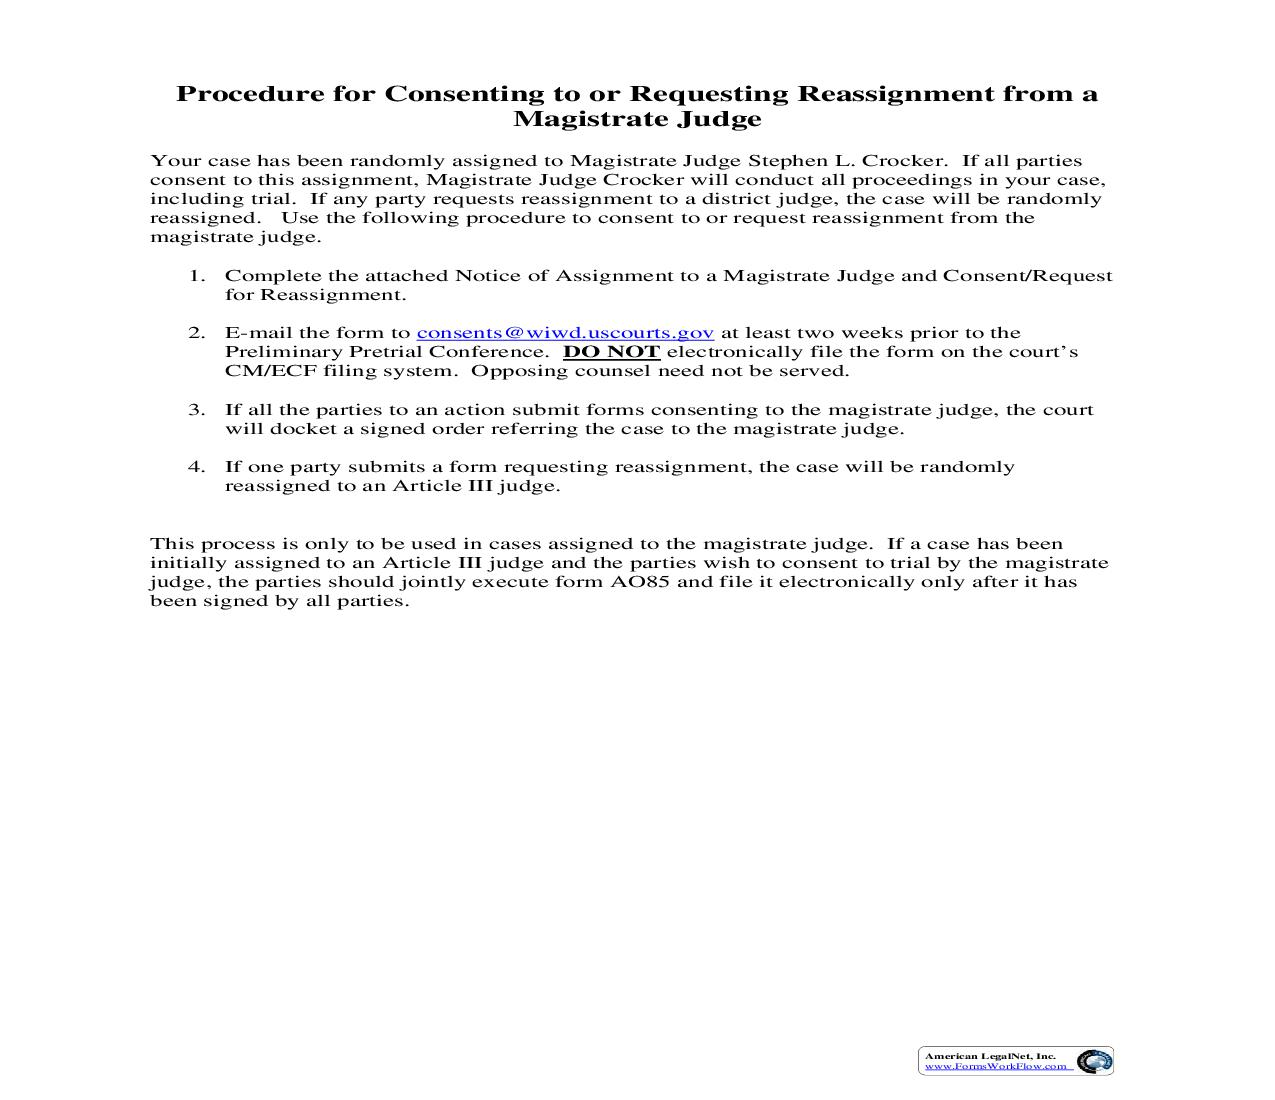 Notice Of Assignment To A Magistrate Judge And Consent Or Request For Reassignment   Pdf Fpdf Doc Docx   Wisconsin